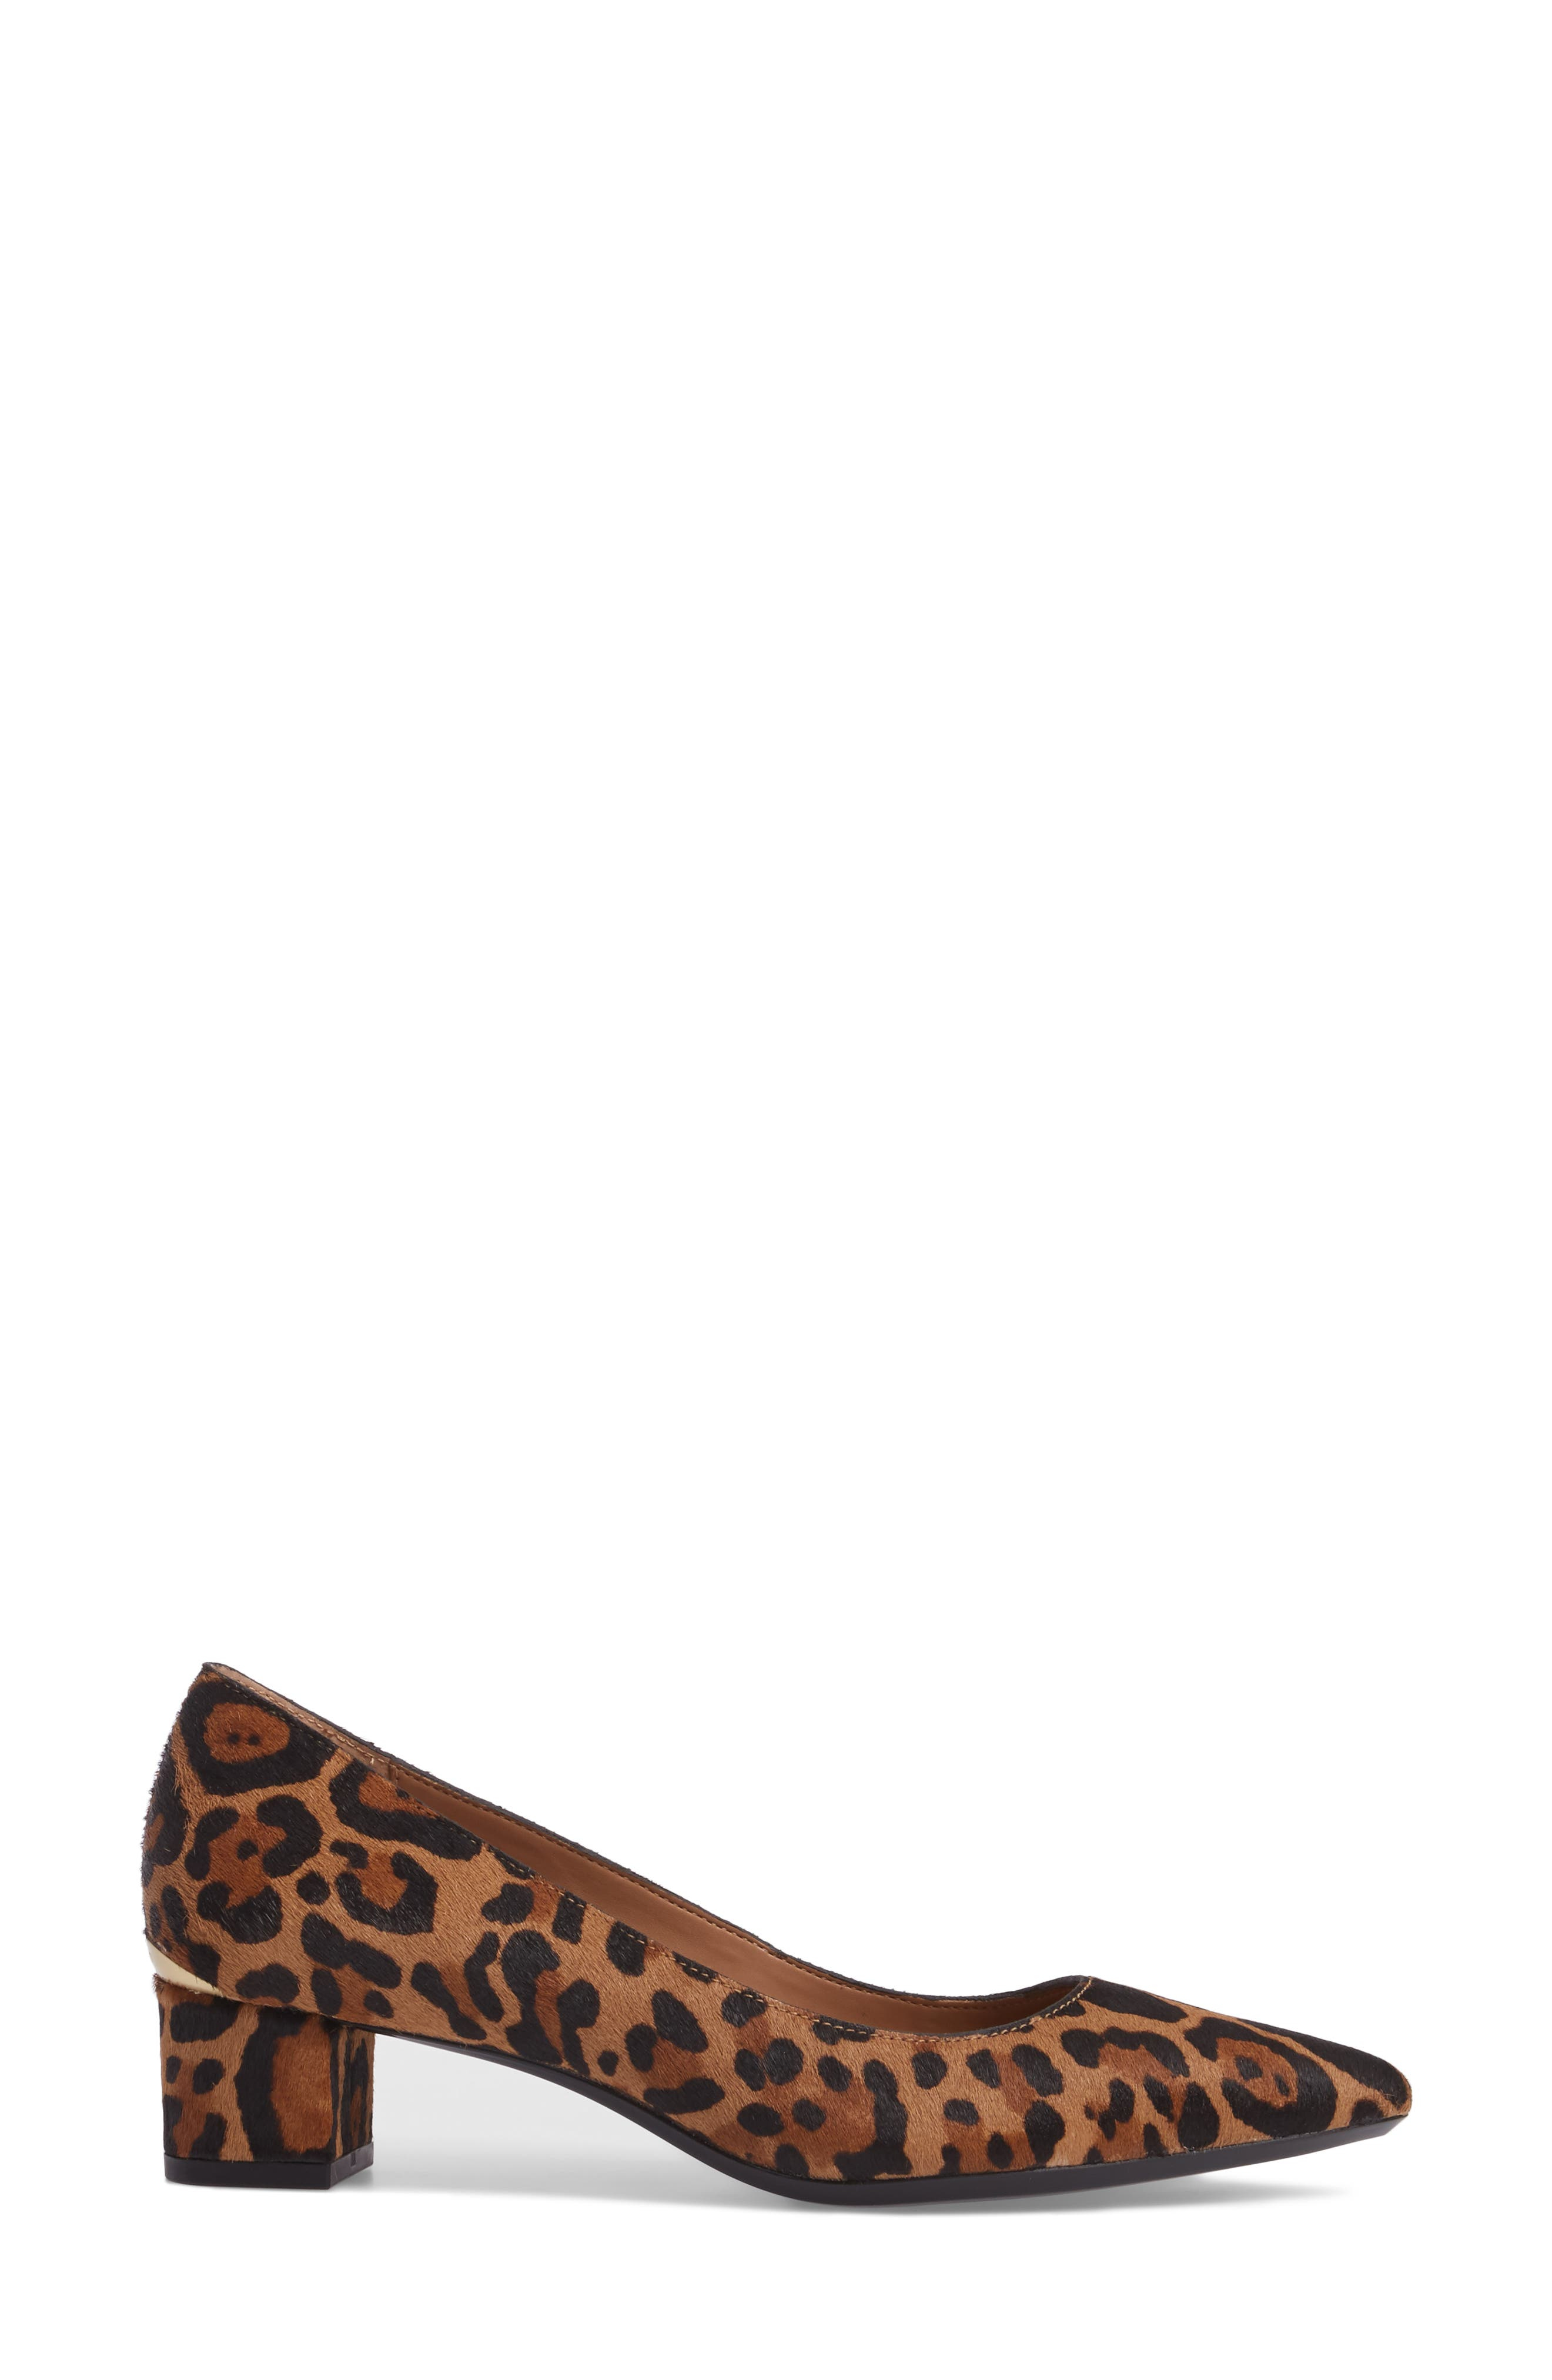 Genoveva Pump,                             Alternate thumbnail 3, color,                             Natural Leopard Hair Calf